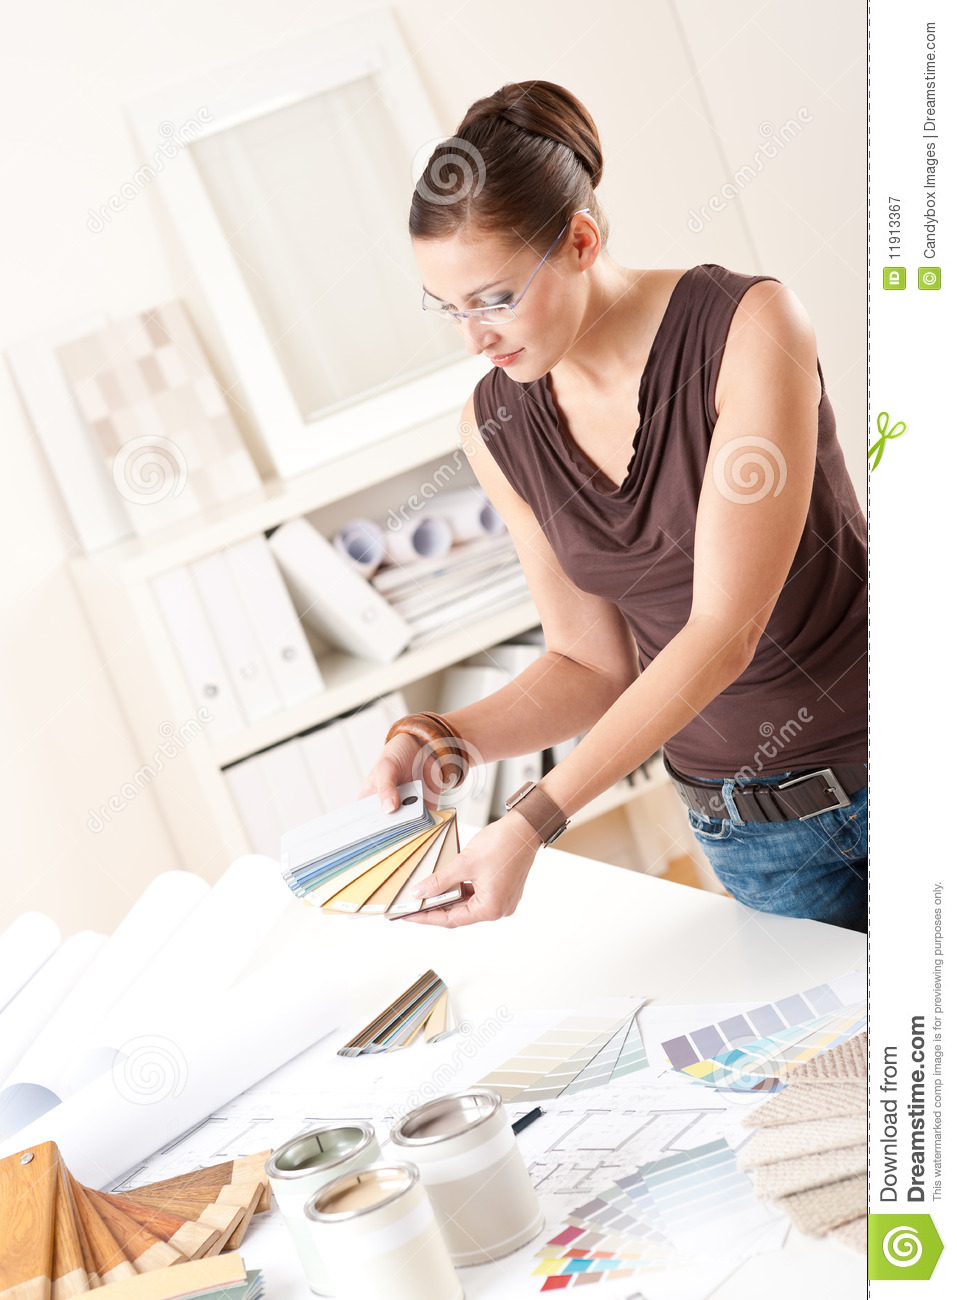 Successful Interior Designer Woman At Office Royalty Free Stock Photography